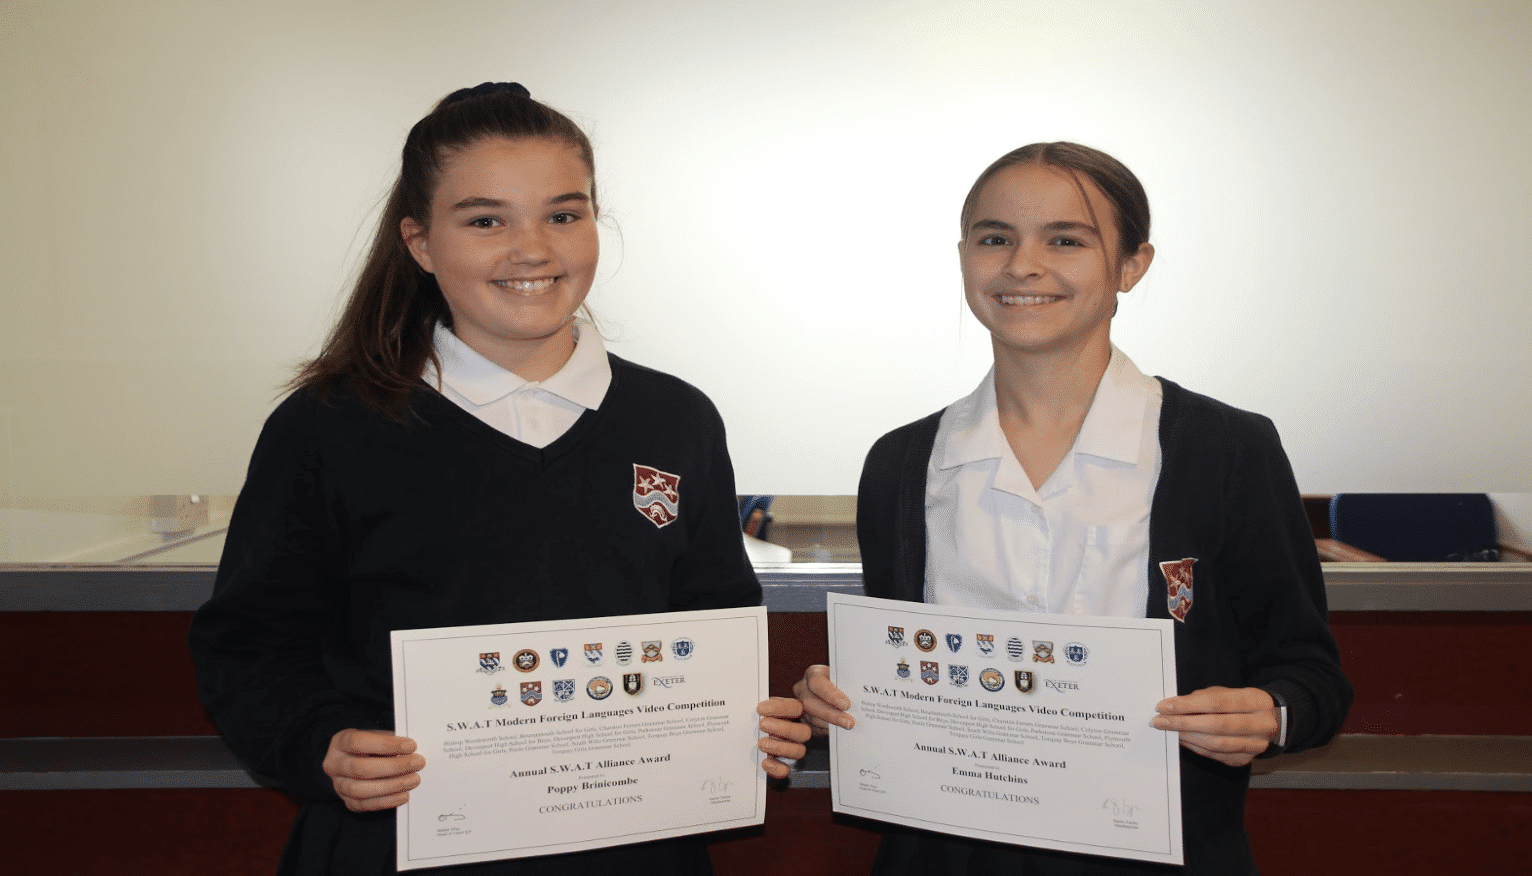 CFGS Win S.W.A.T French Video Challenge